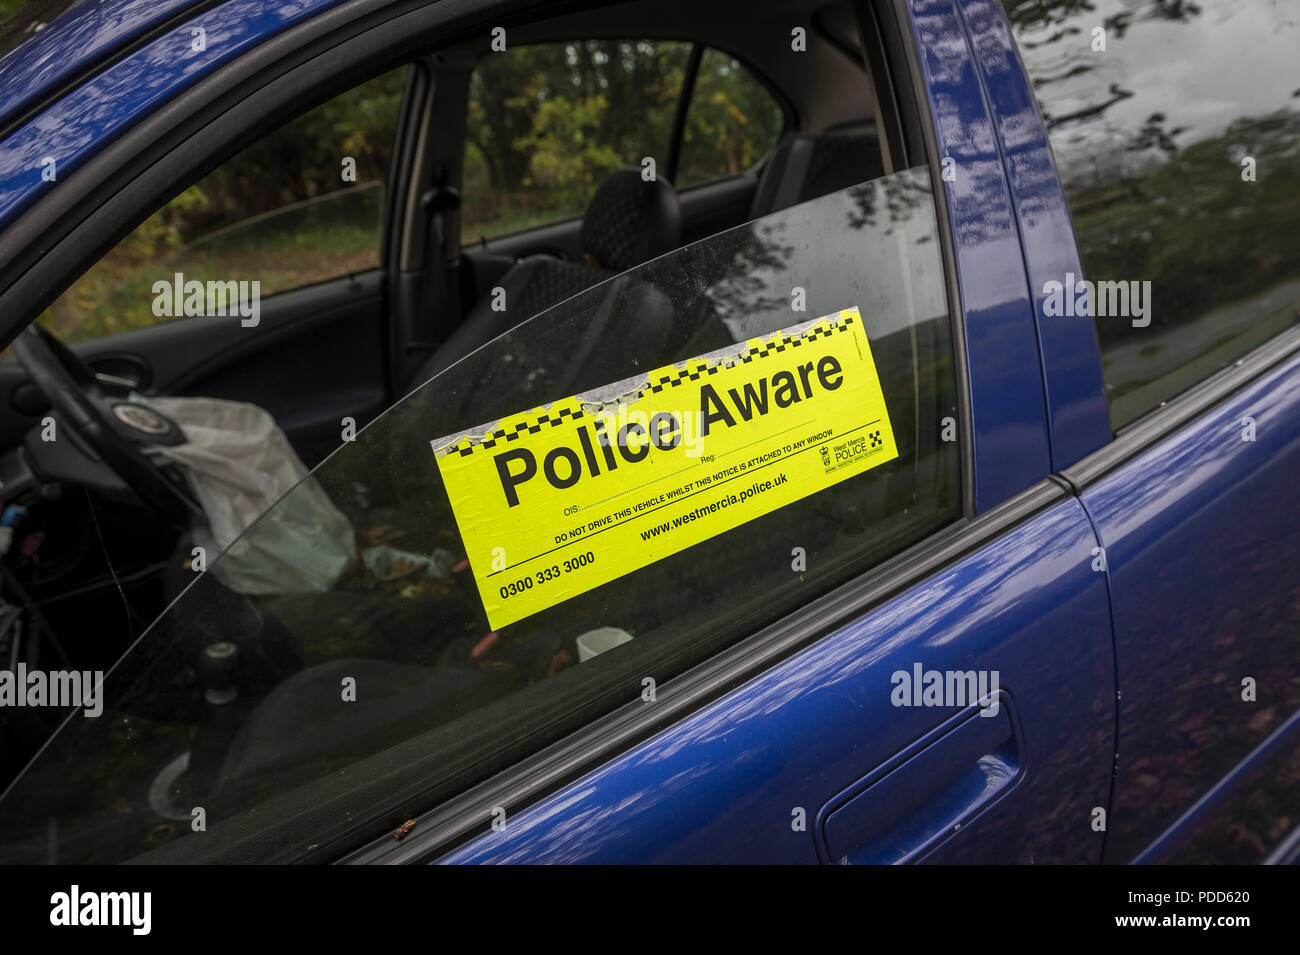 Police Aware Sticker High Resolution Stock Photography And Images Alamy [ 955 x 1300 Pixel ]